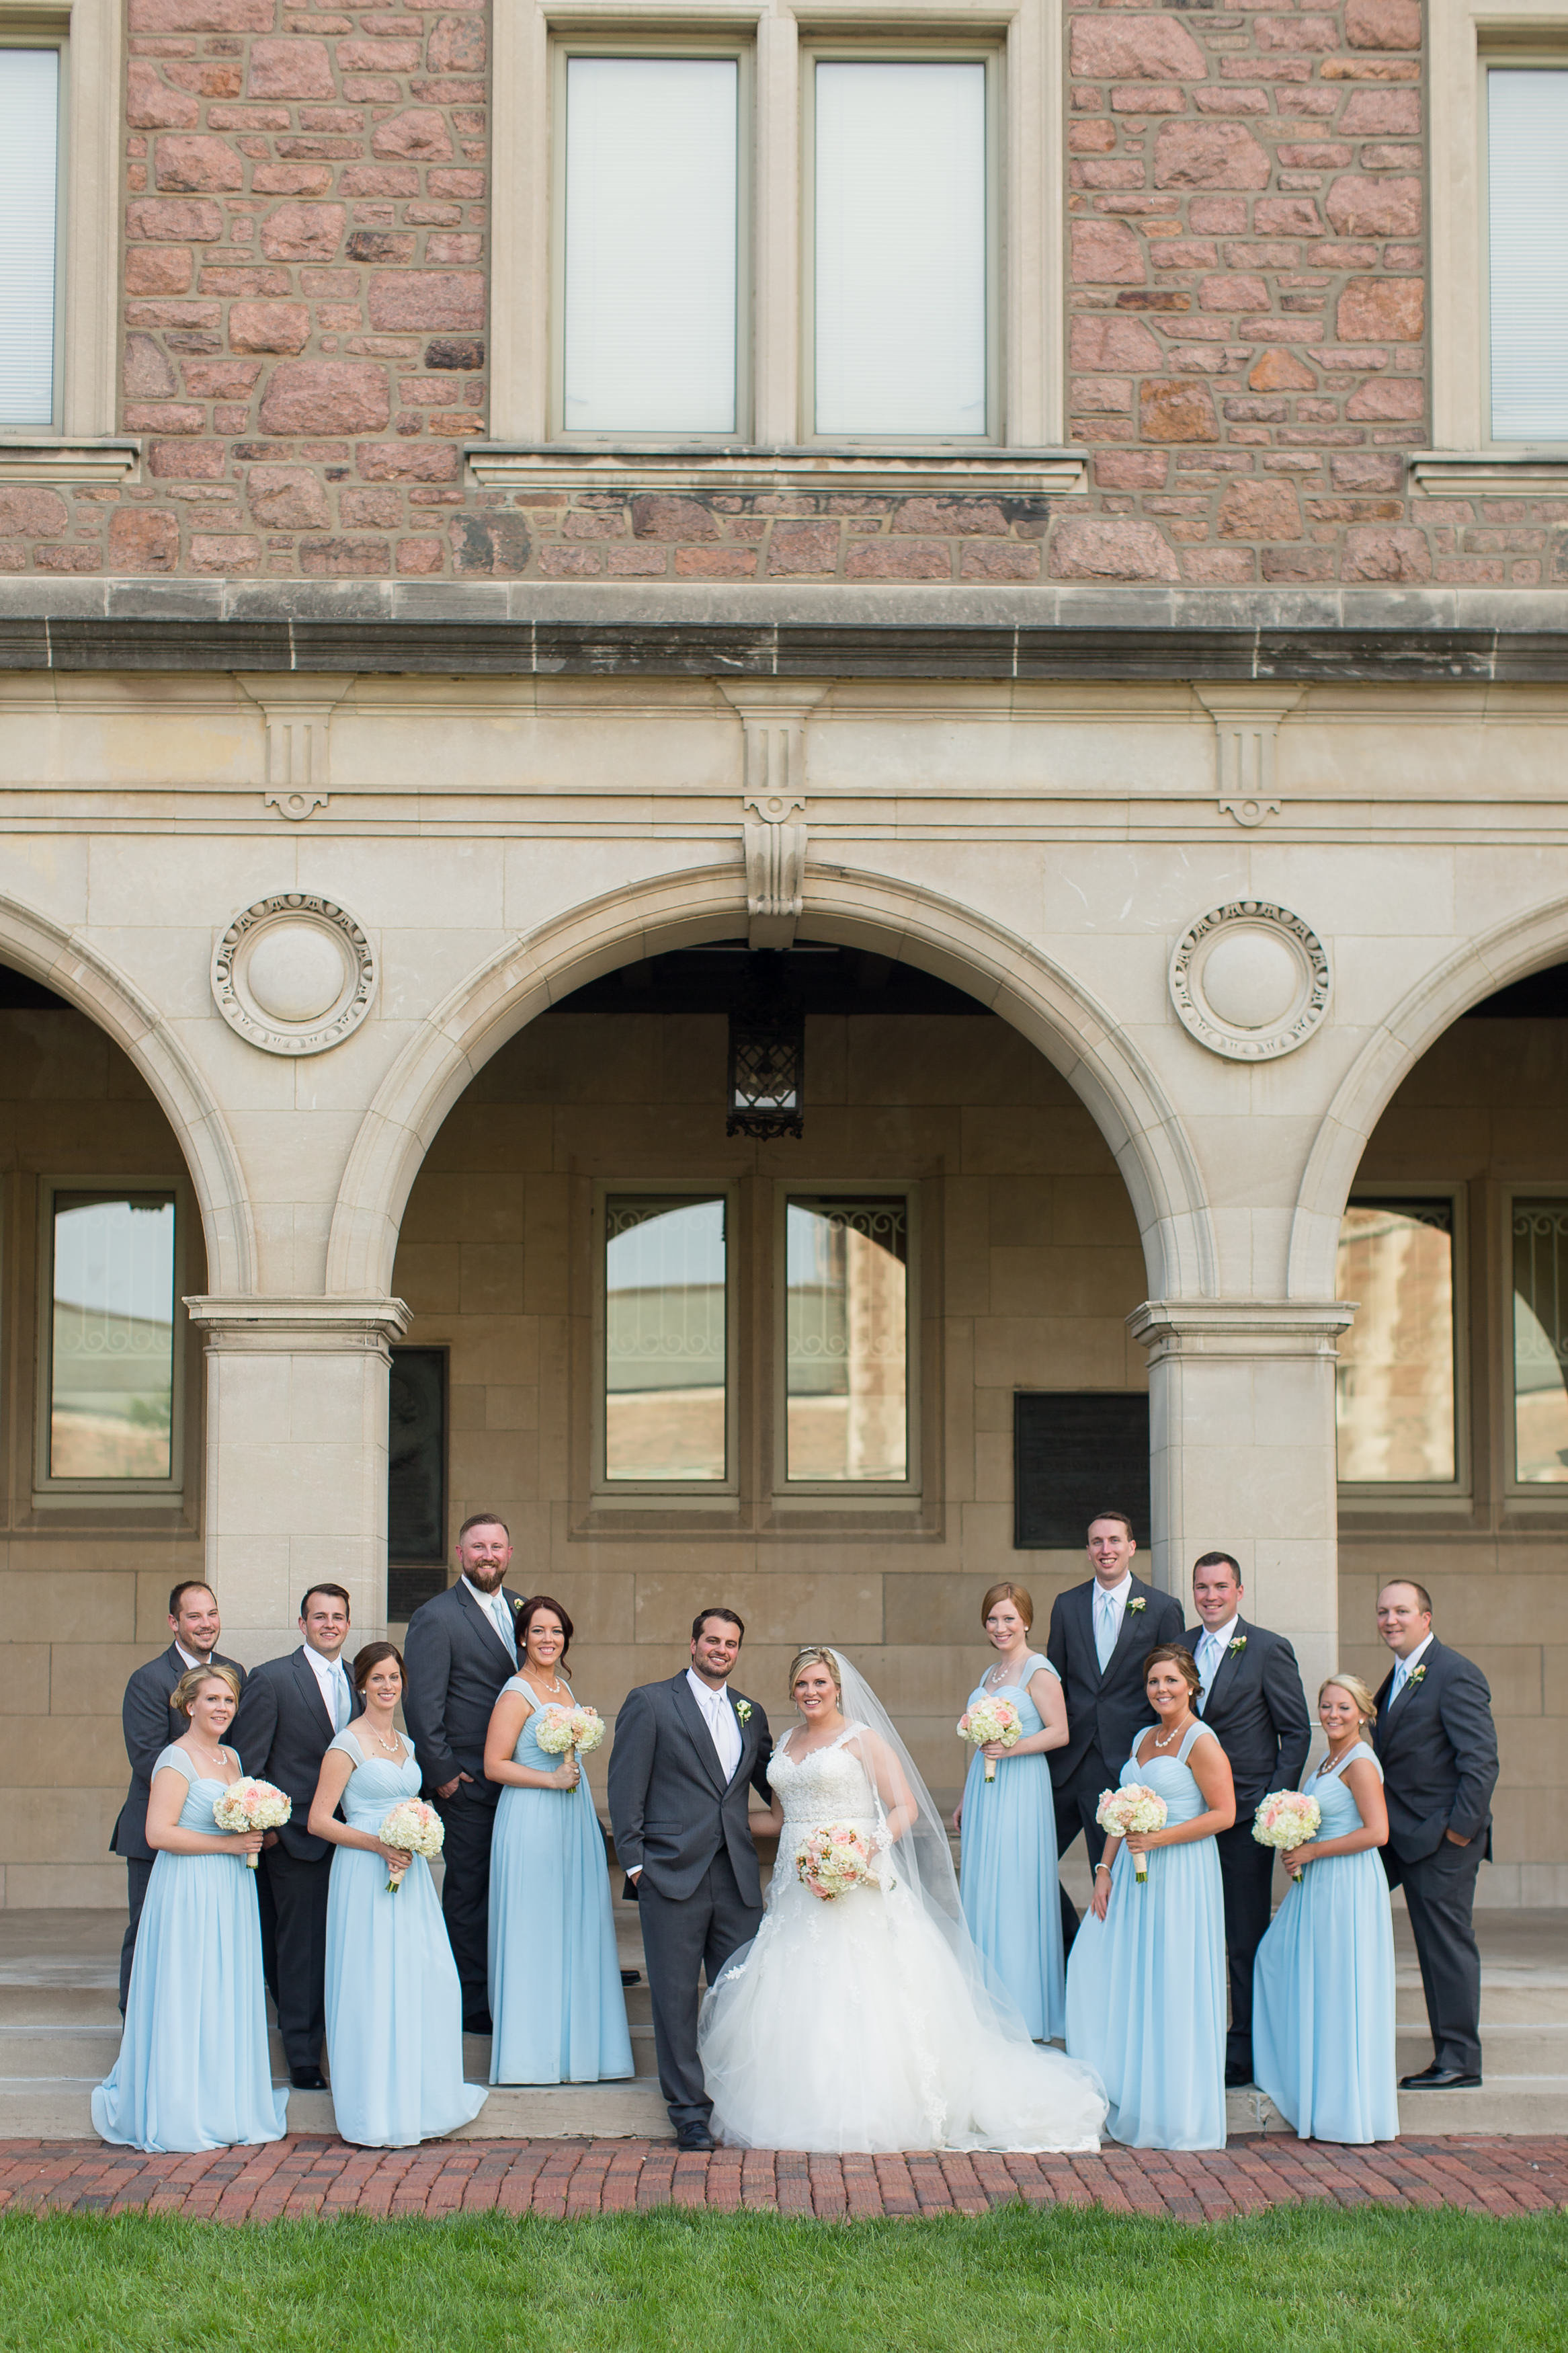 #STLBRIDE STL Wedding Photography